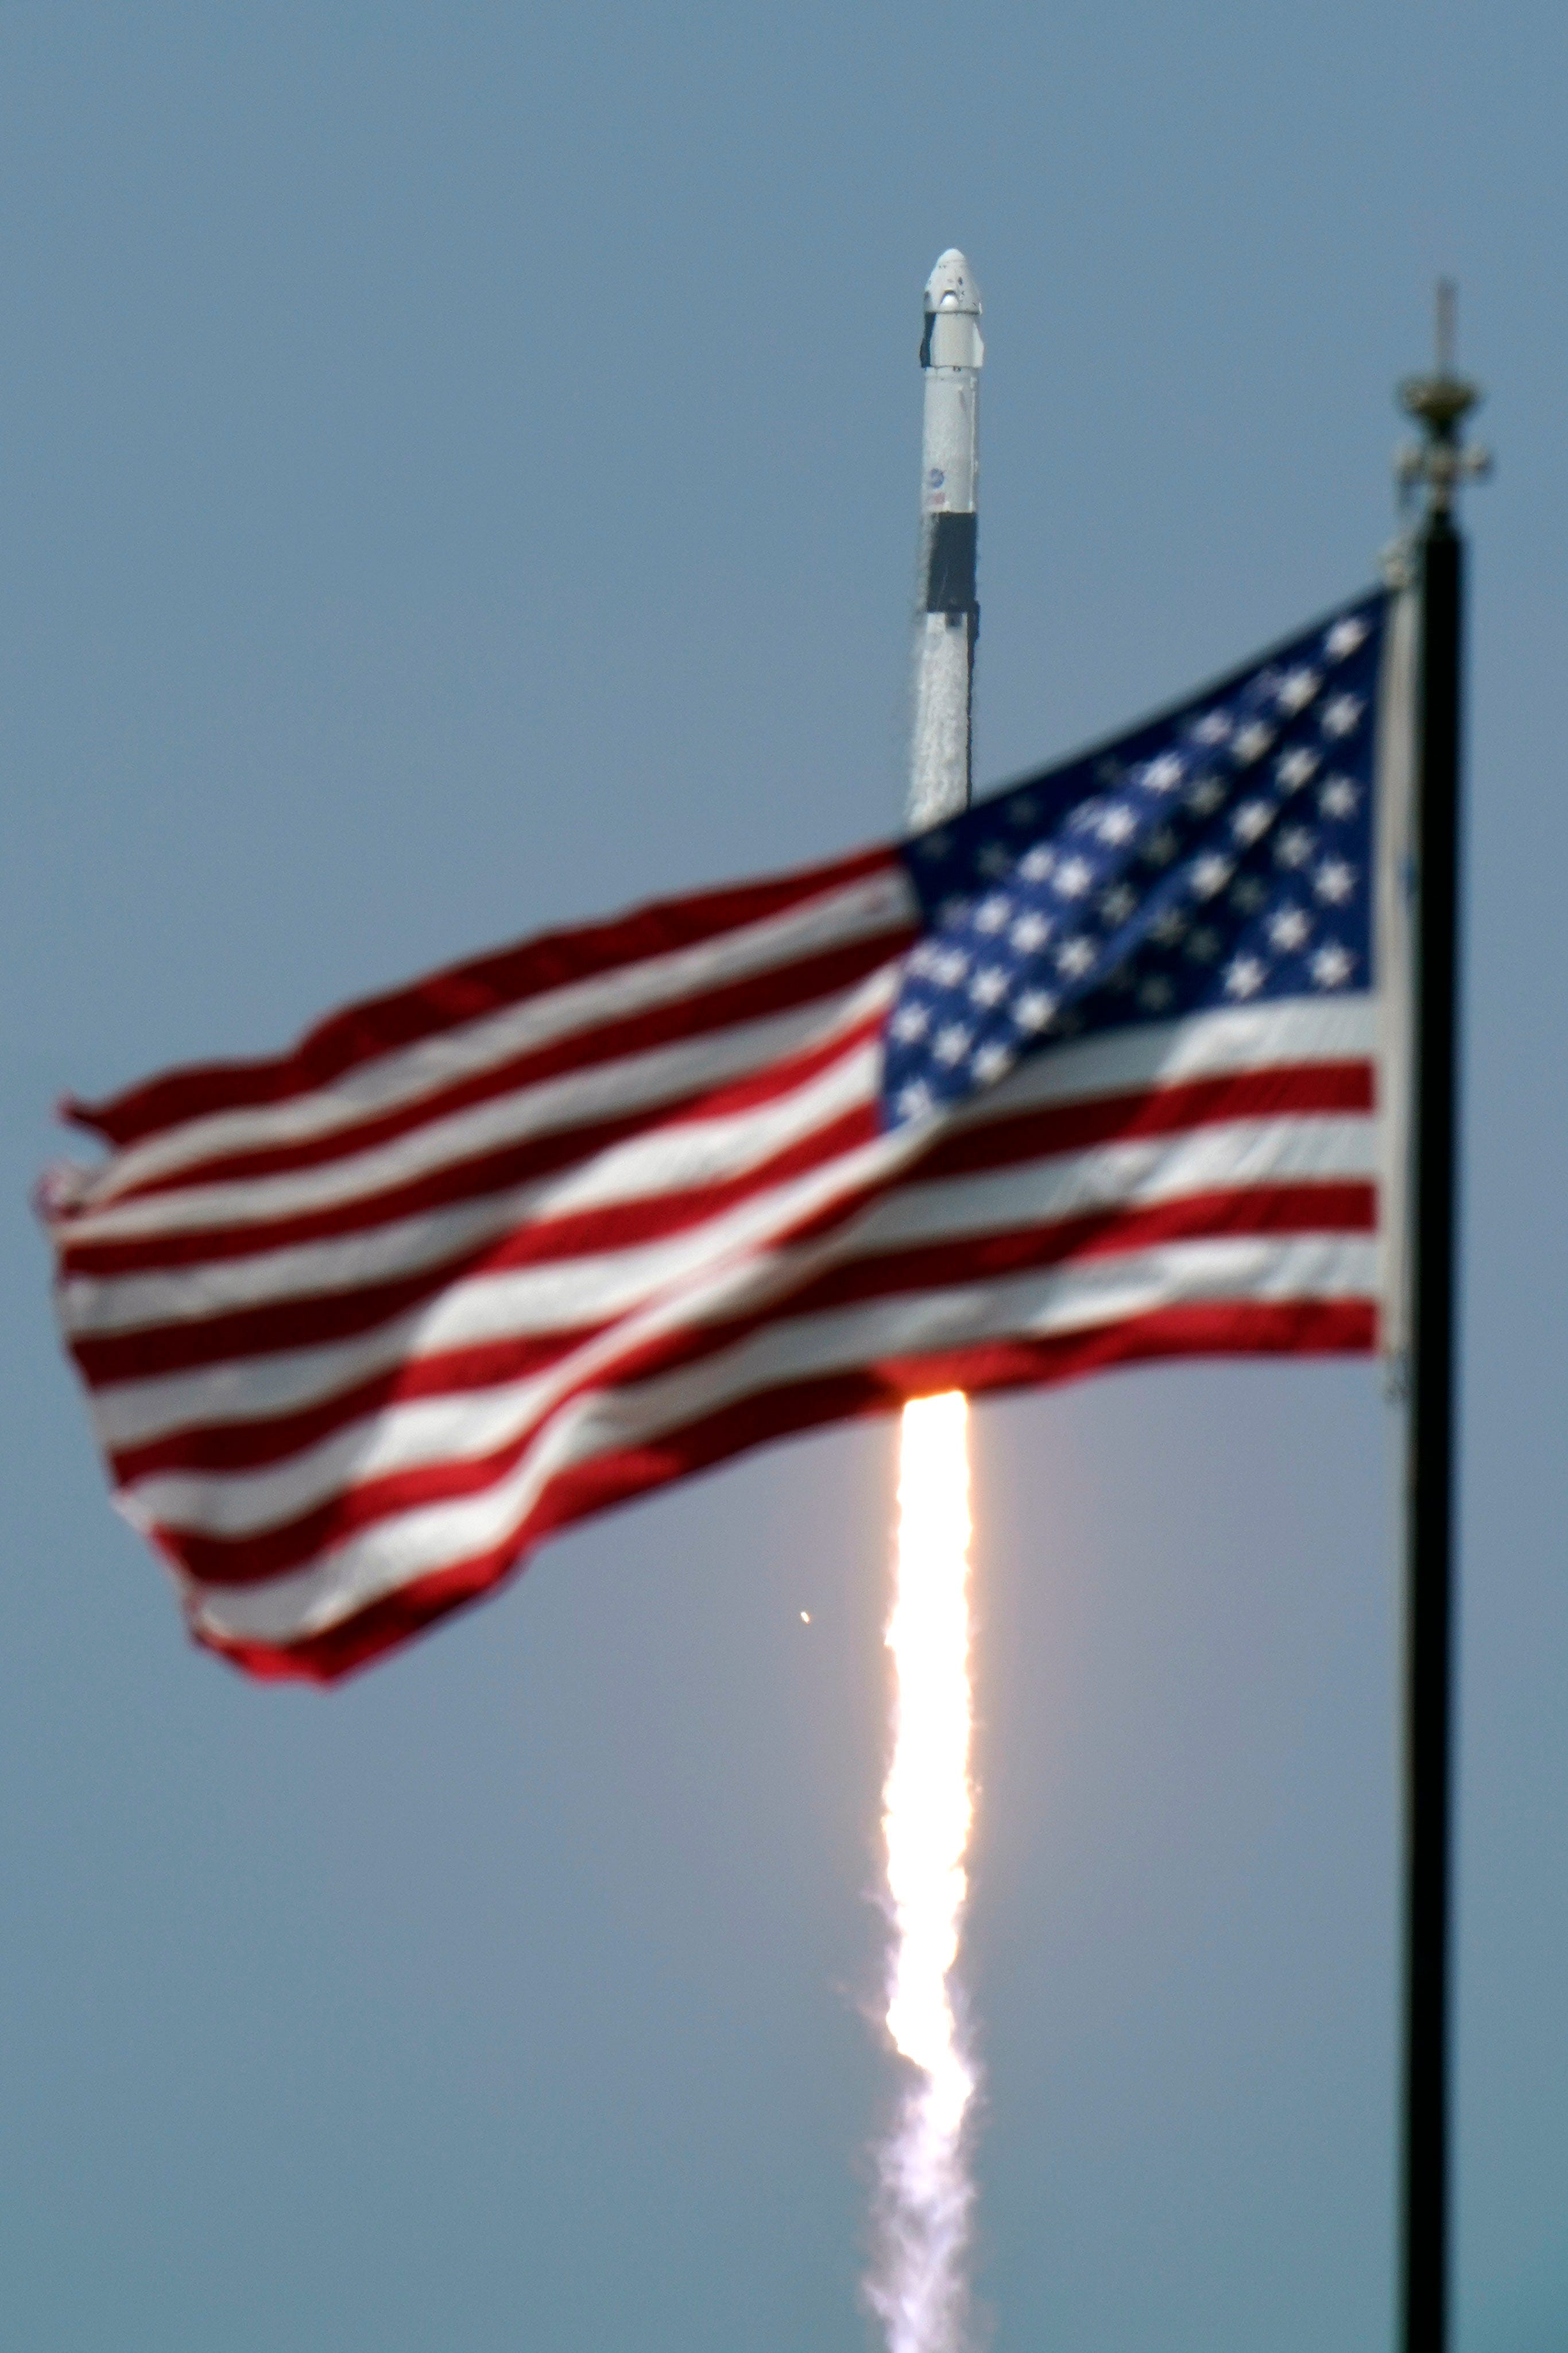 Nasa Spacex Make History By Launching Americans With Crew Dragon